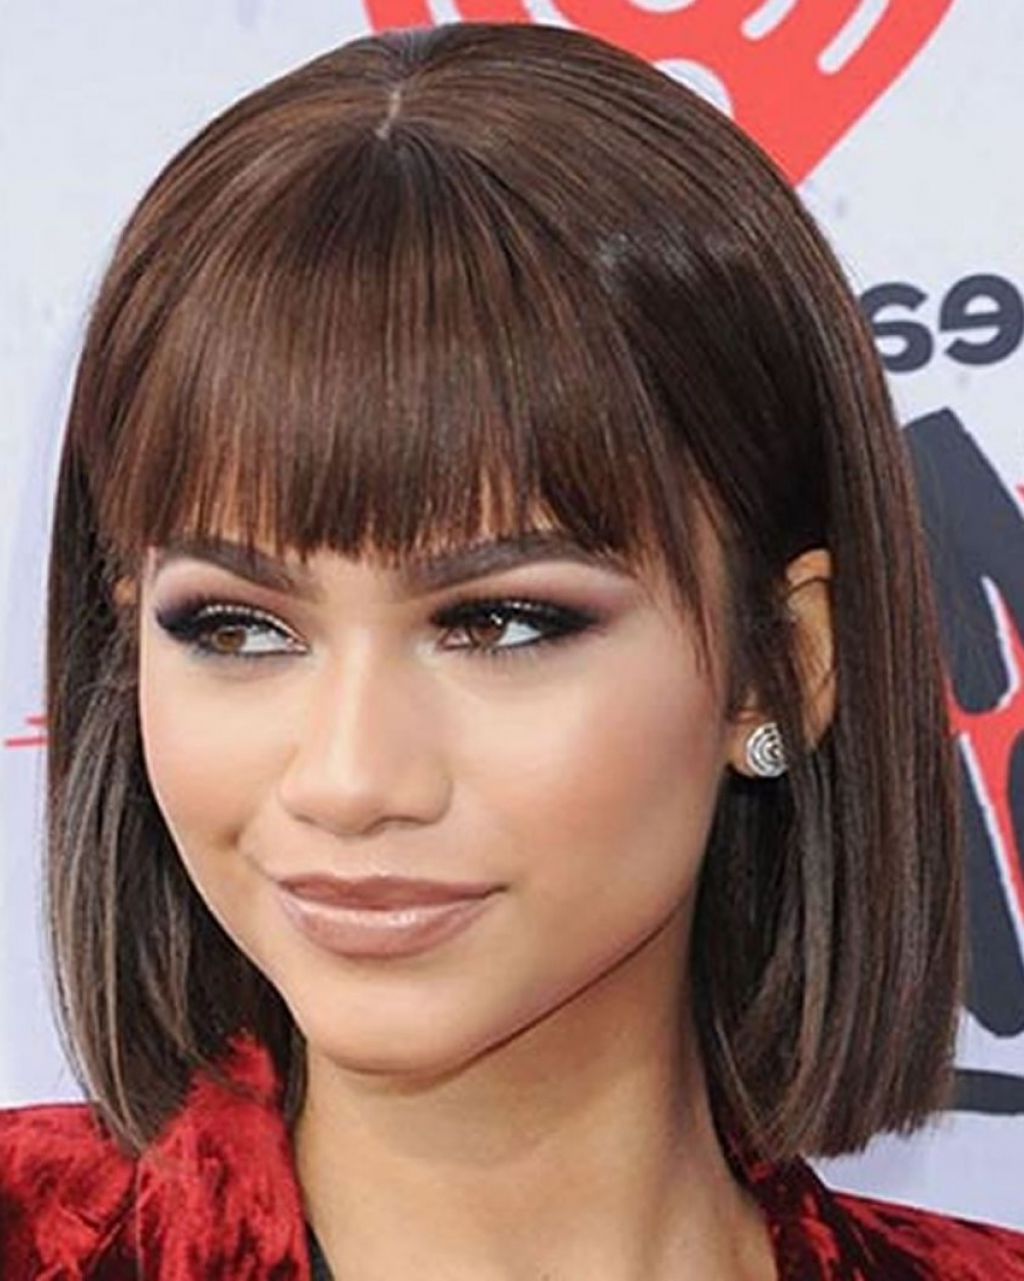 Widely Used Medium Hairstyles With A Fringe In Women Hairstyle : Wavy Bob With Bangs Black Hairstyles Fringe Long (View 14 of 20)